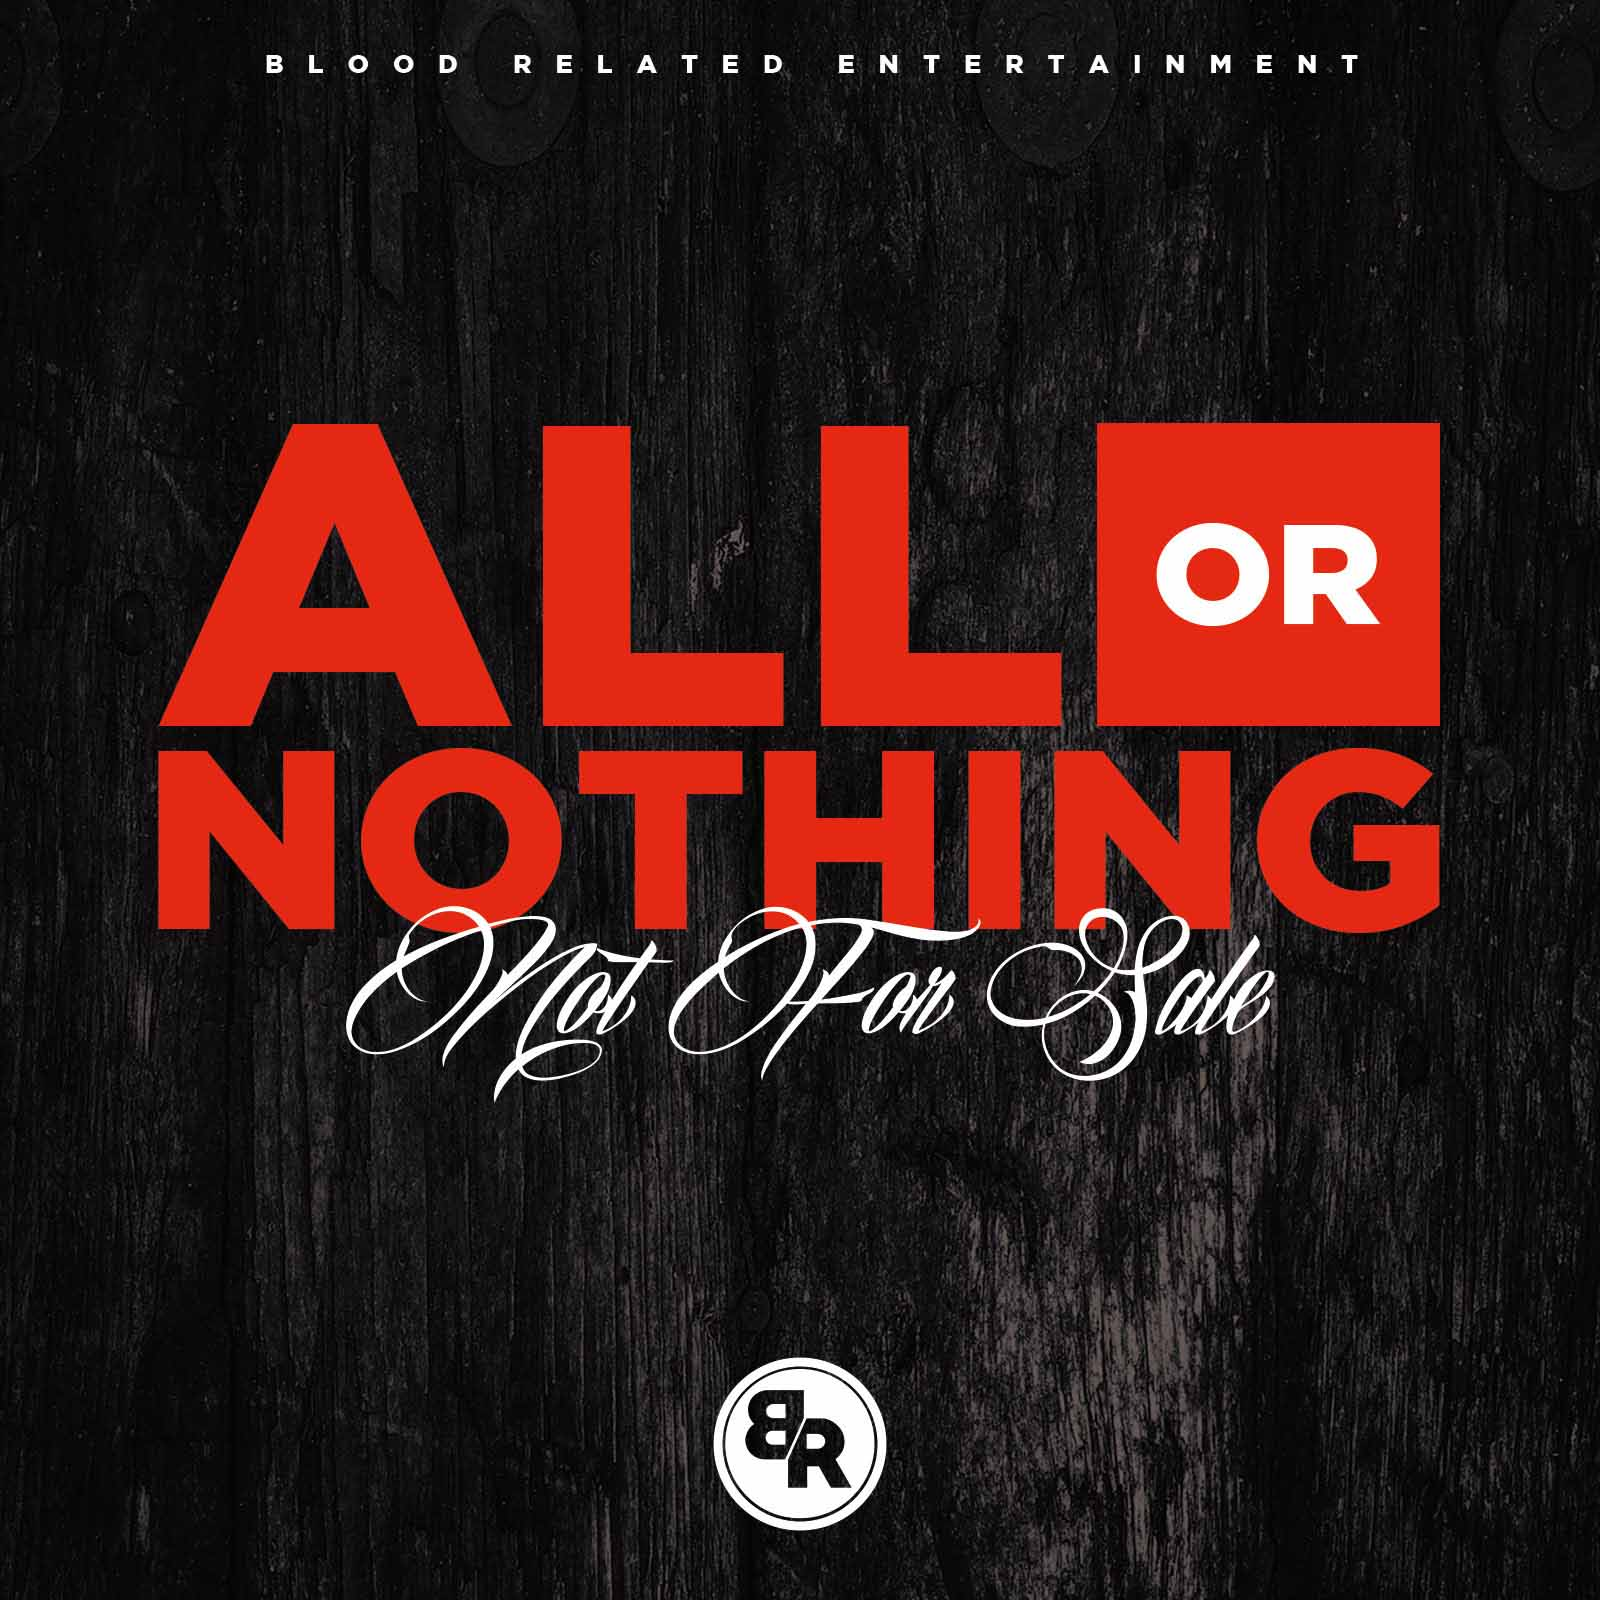 All or Nothing: Not For Sale EP by Blood Related Entertainment